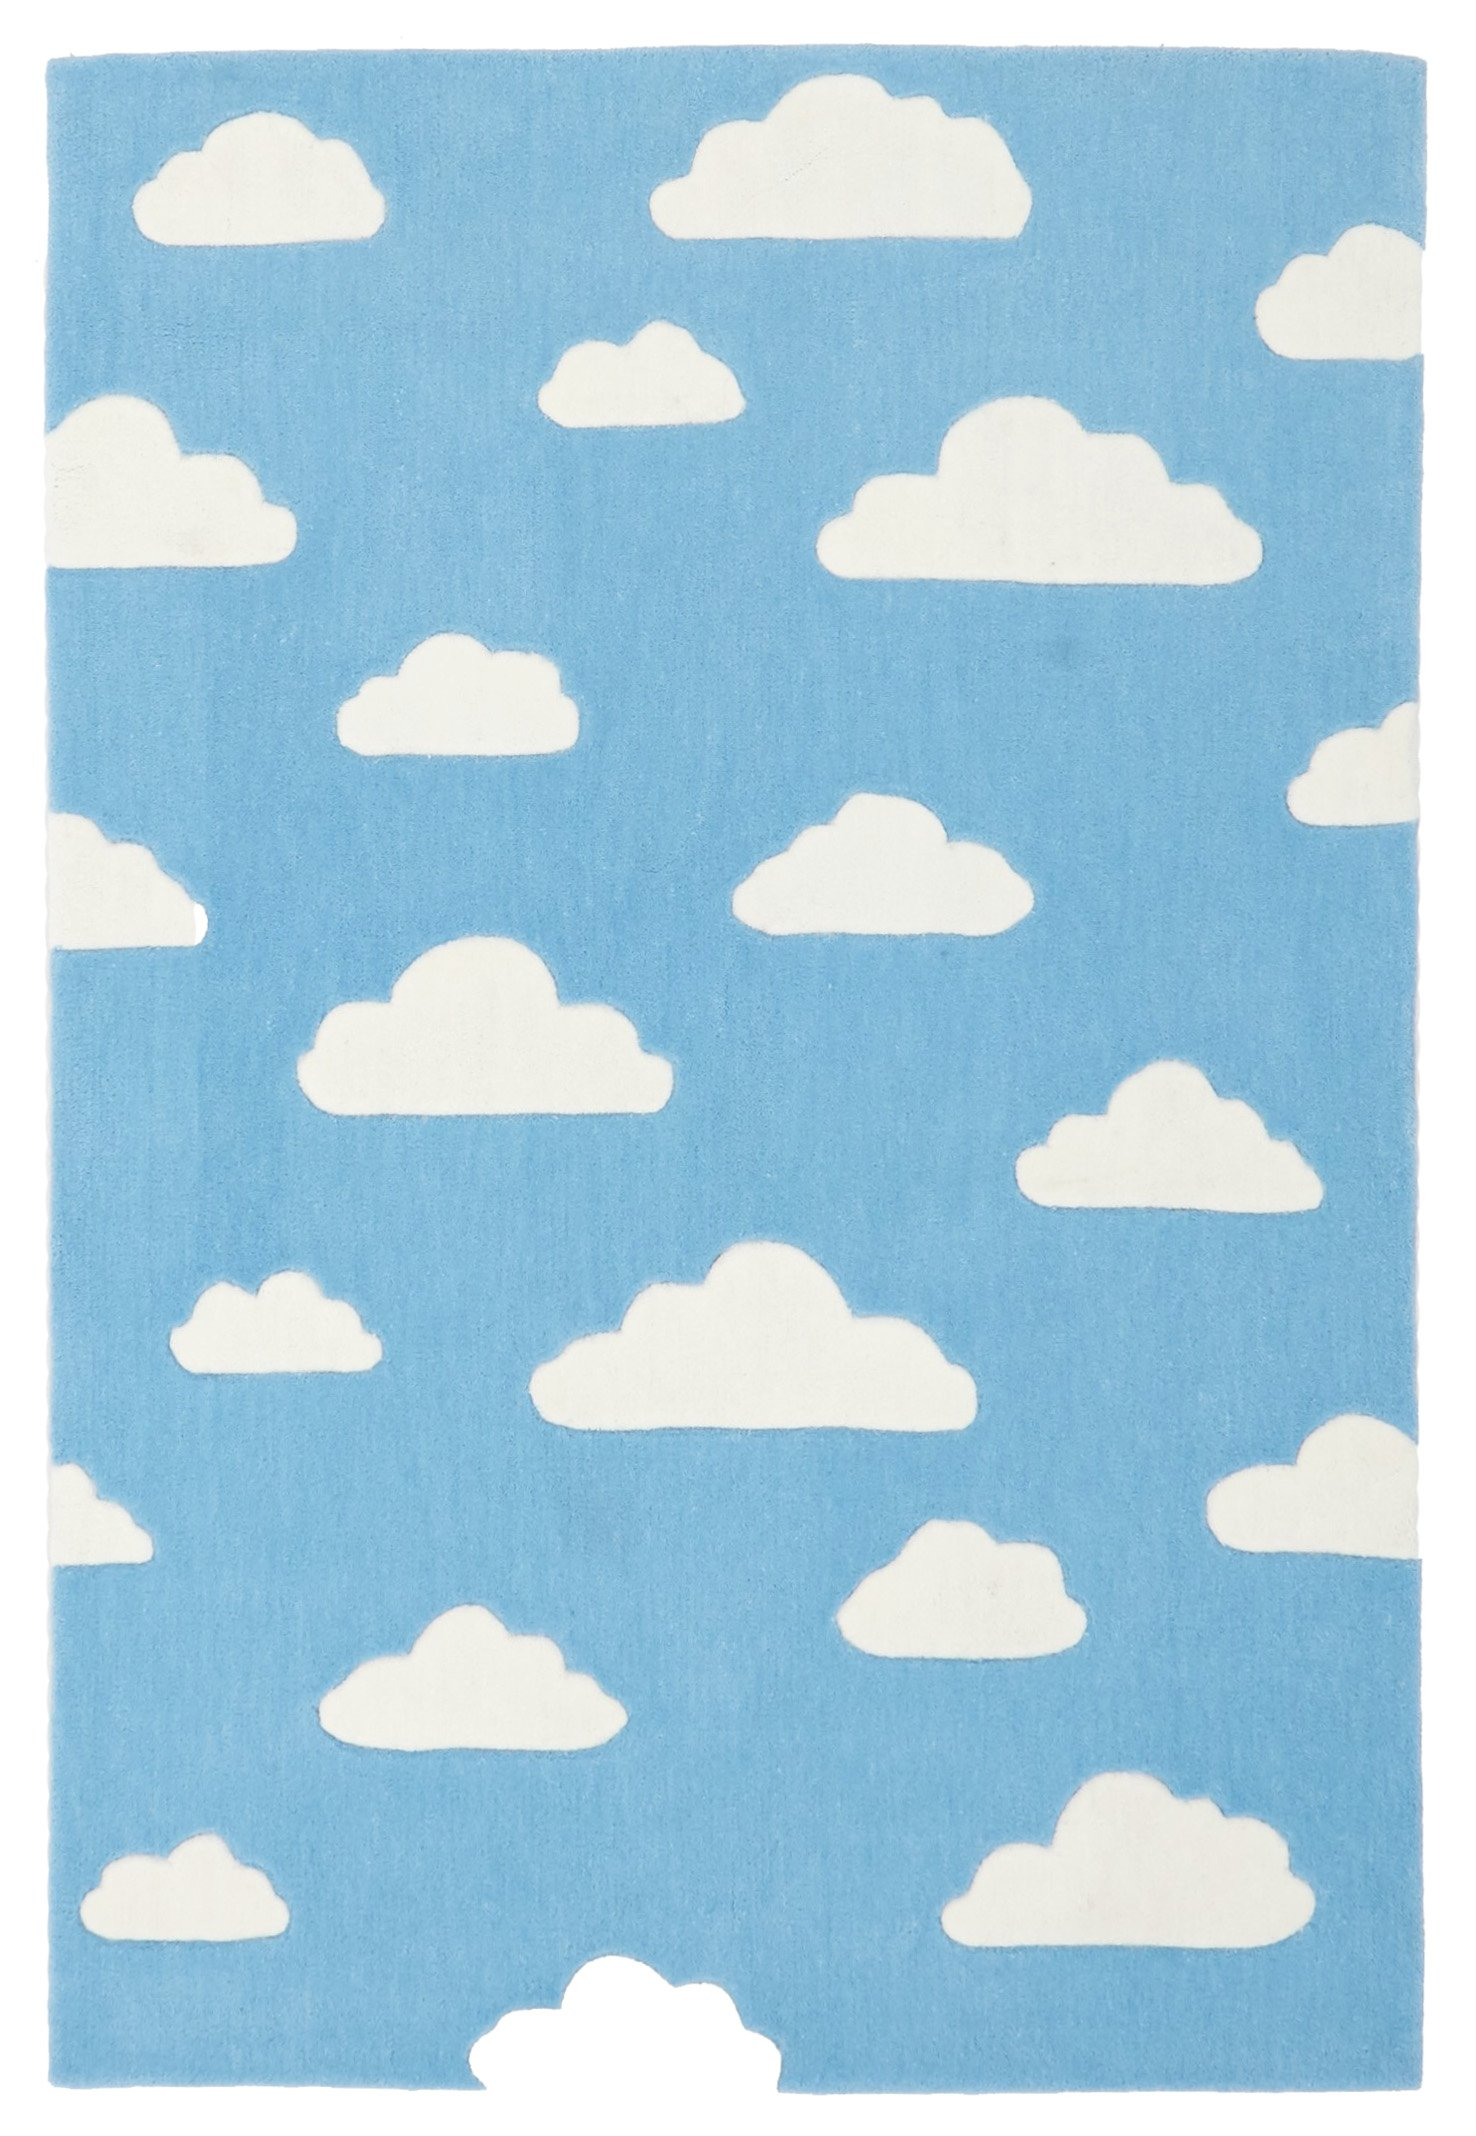 neverland blue u0026 white clouds kids rug ERTWNGJ